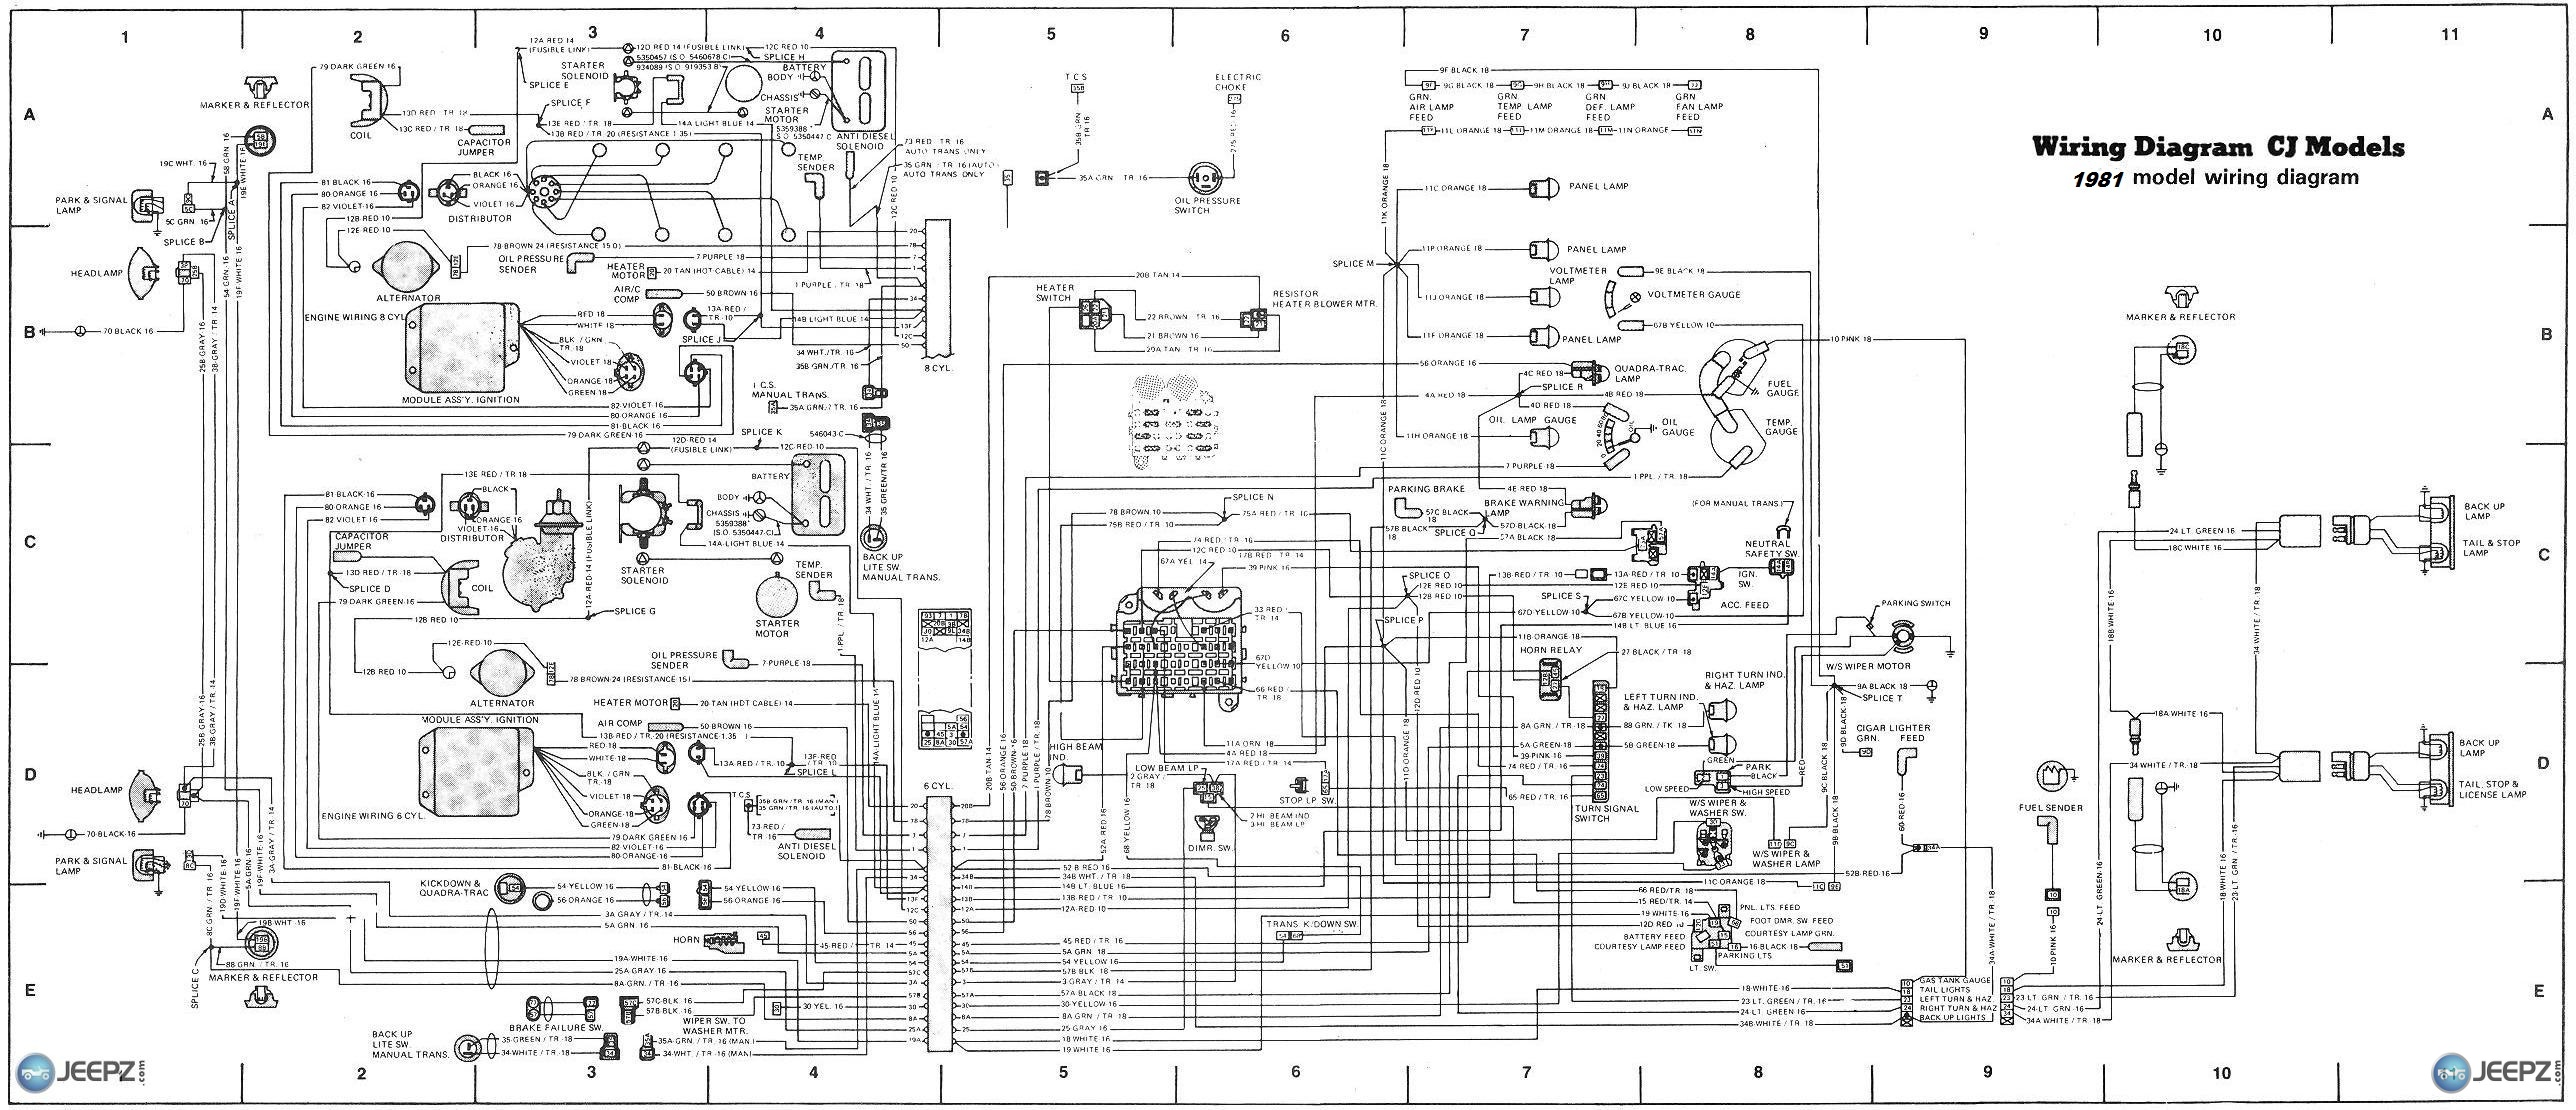 D Cj Wire Diagram Cj Wiring Diagram